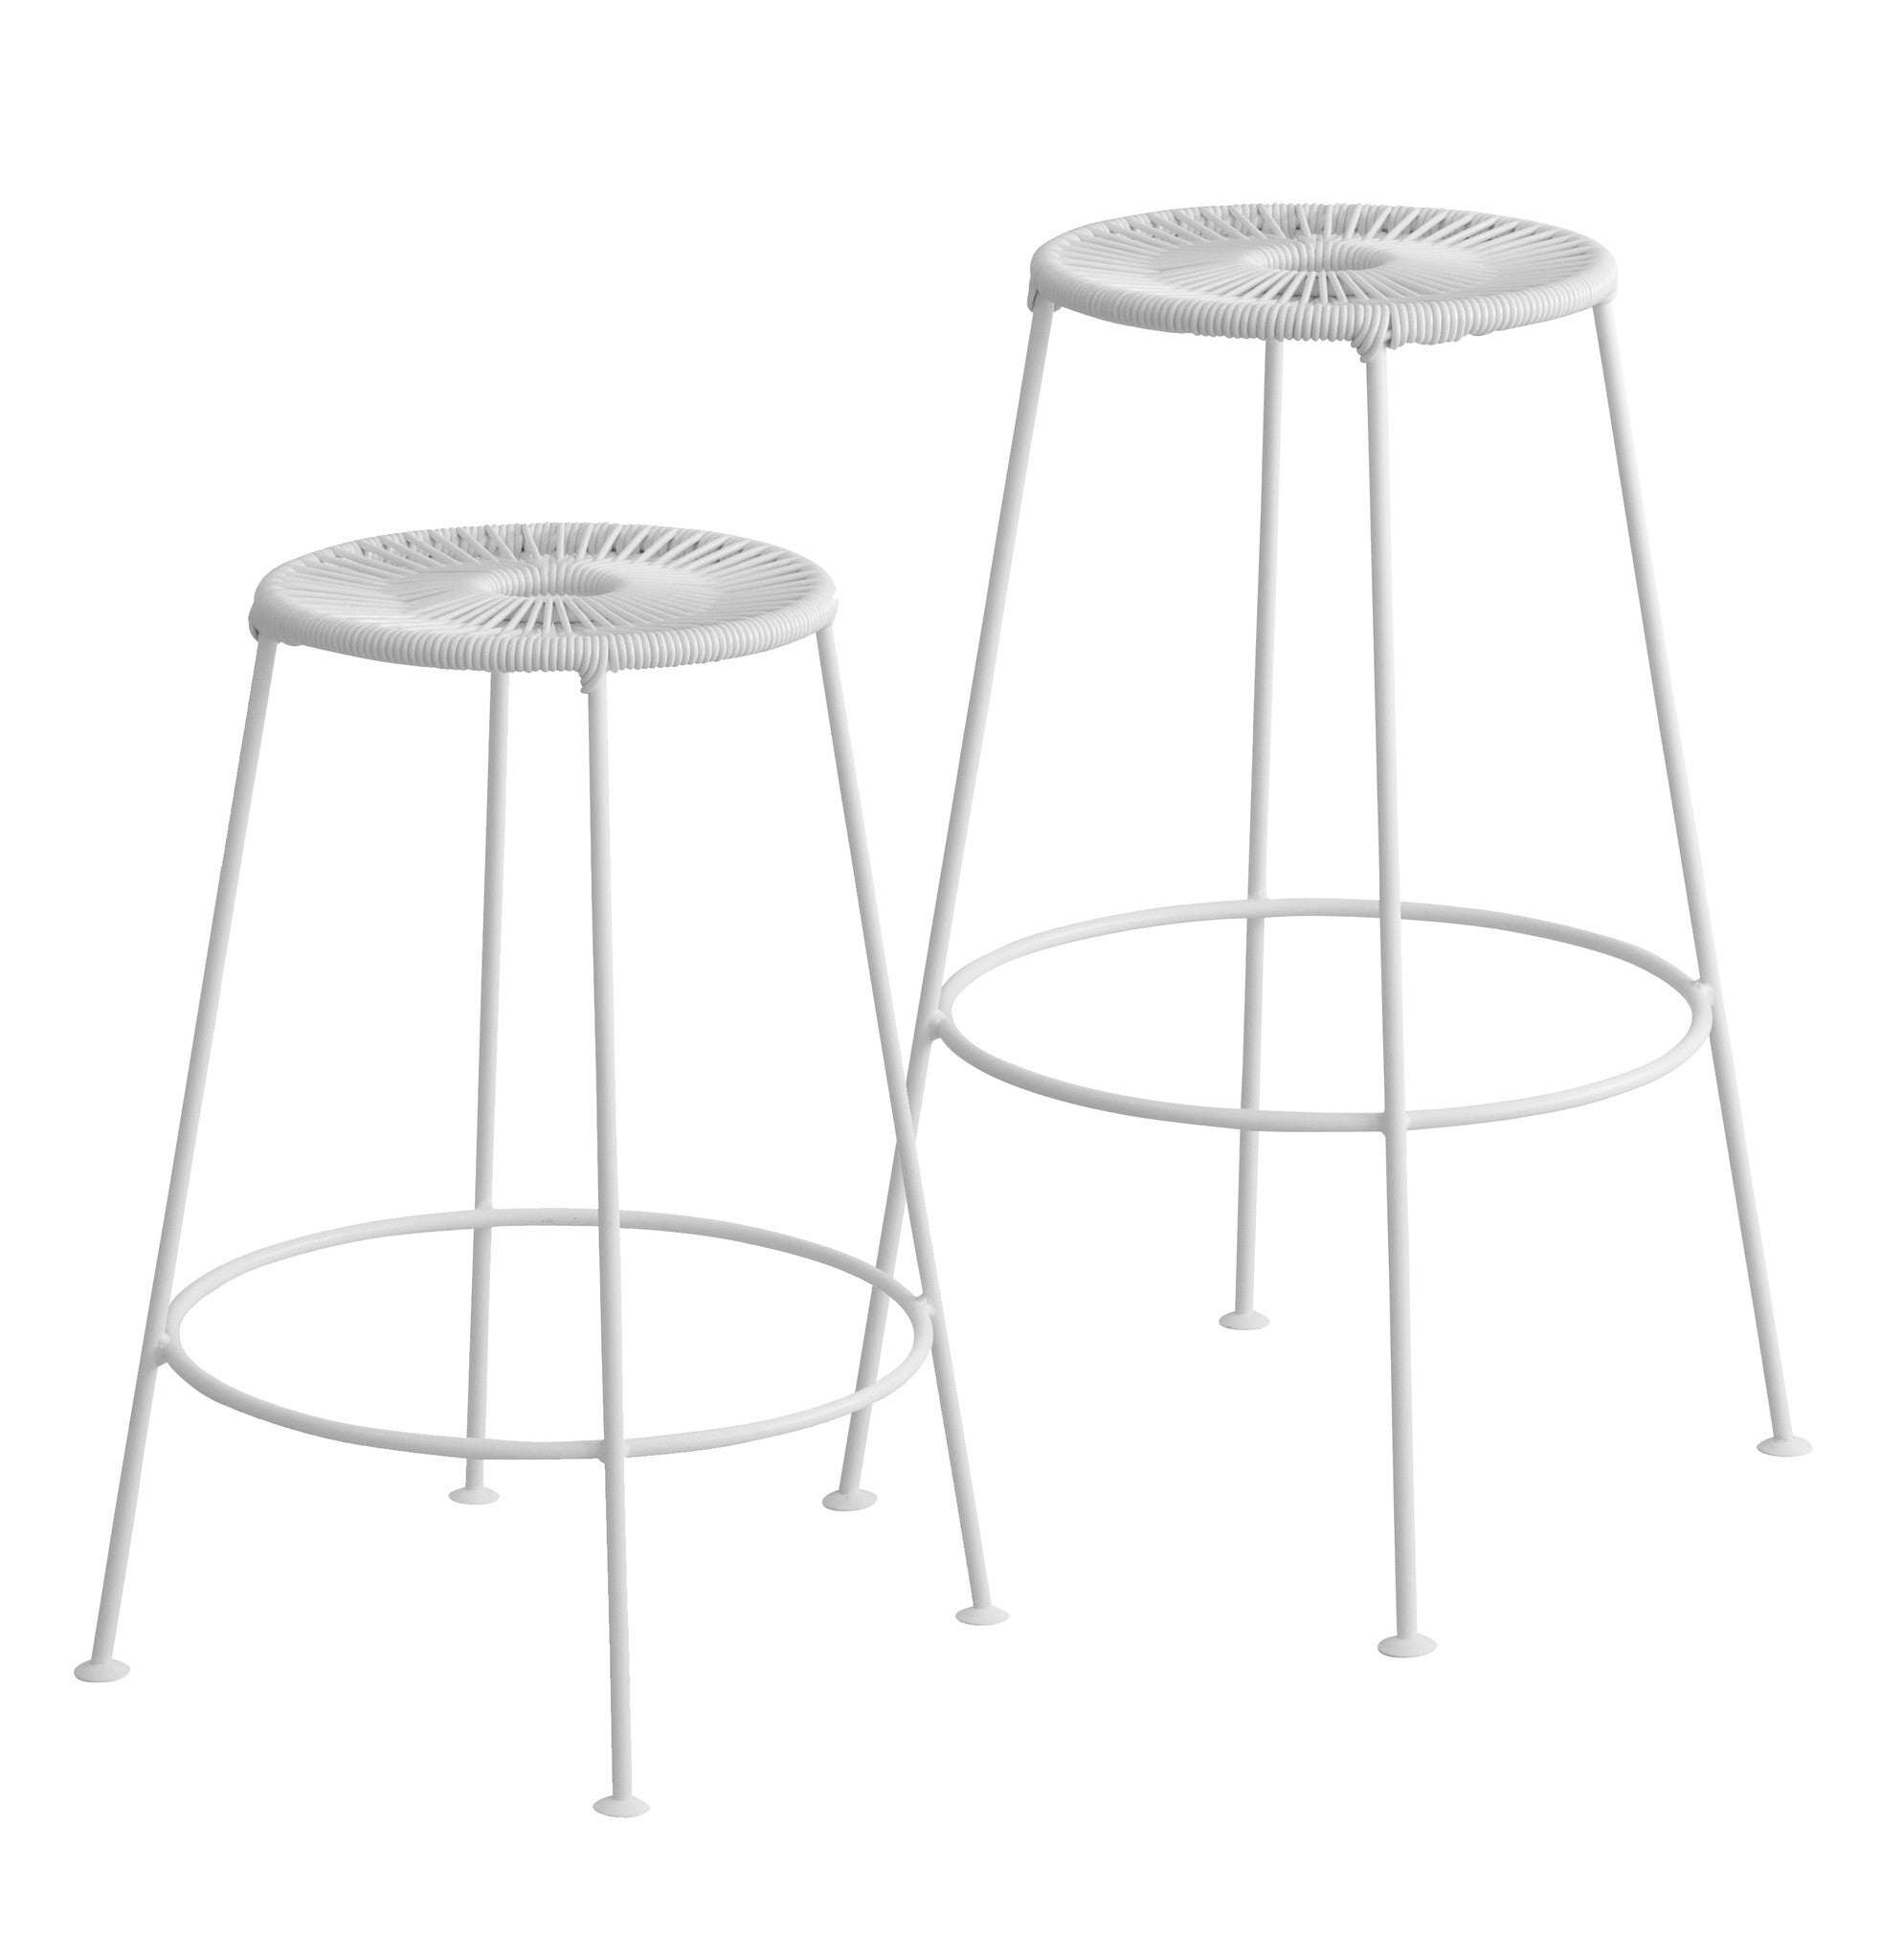 Bar stool ACAPULCO